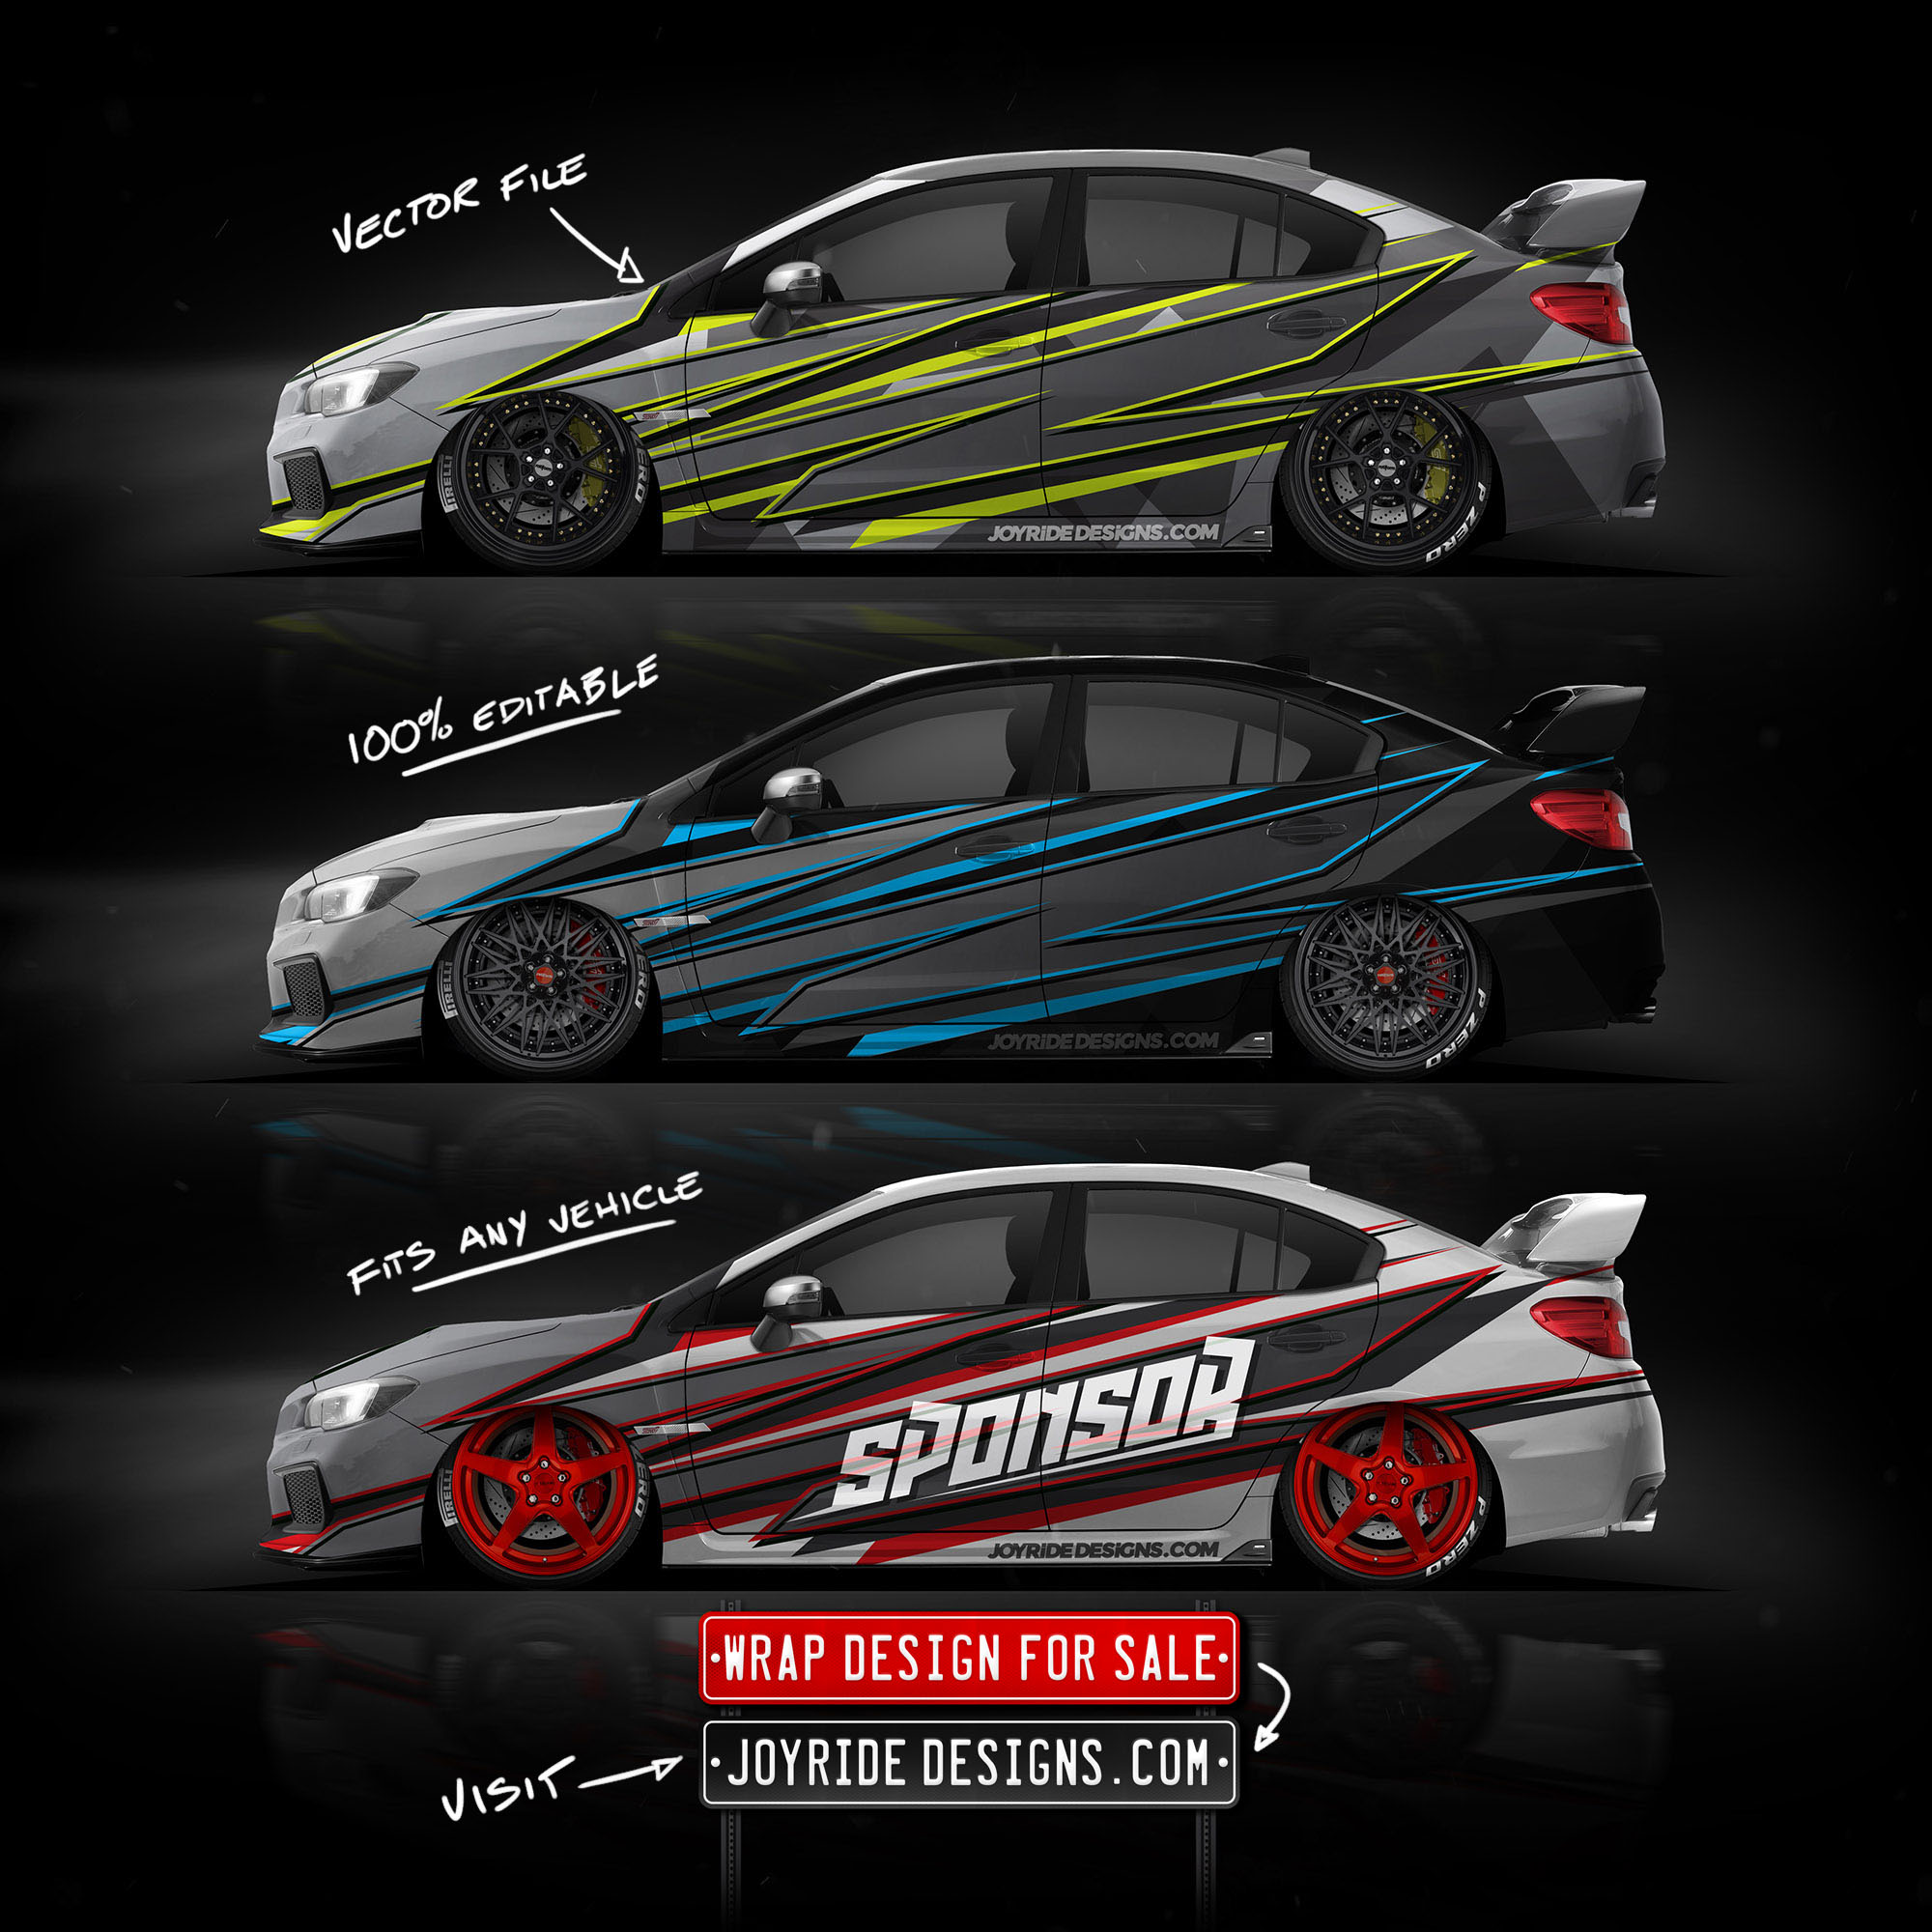 2019 SUBARU STI SIDE JOYRIDE WRAP DESIGN JD1